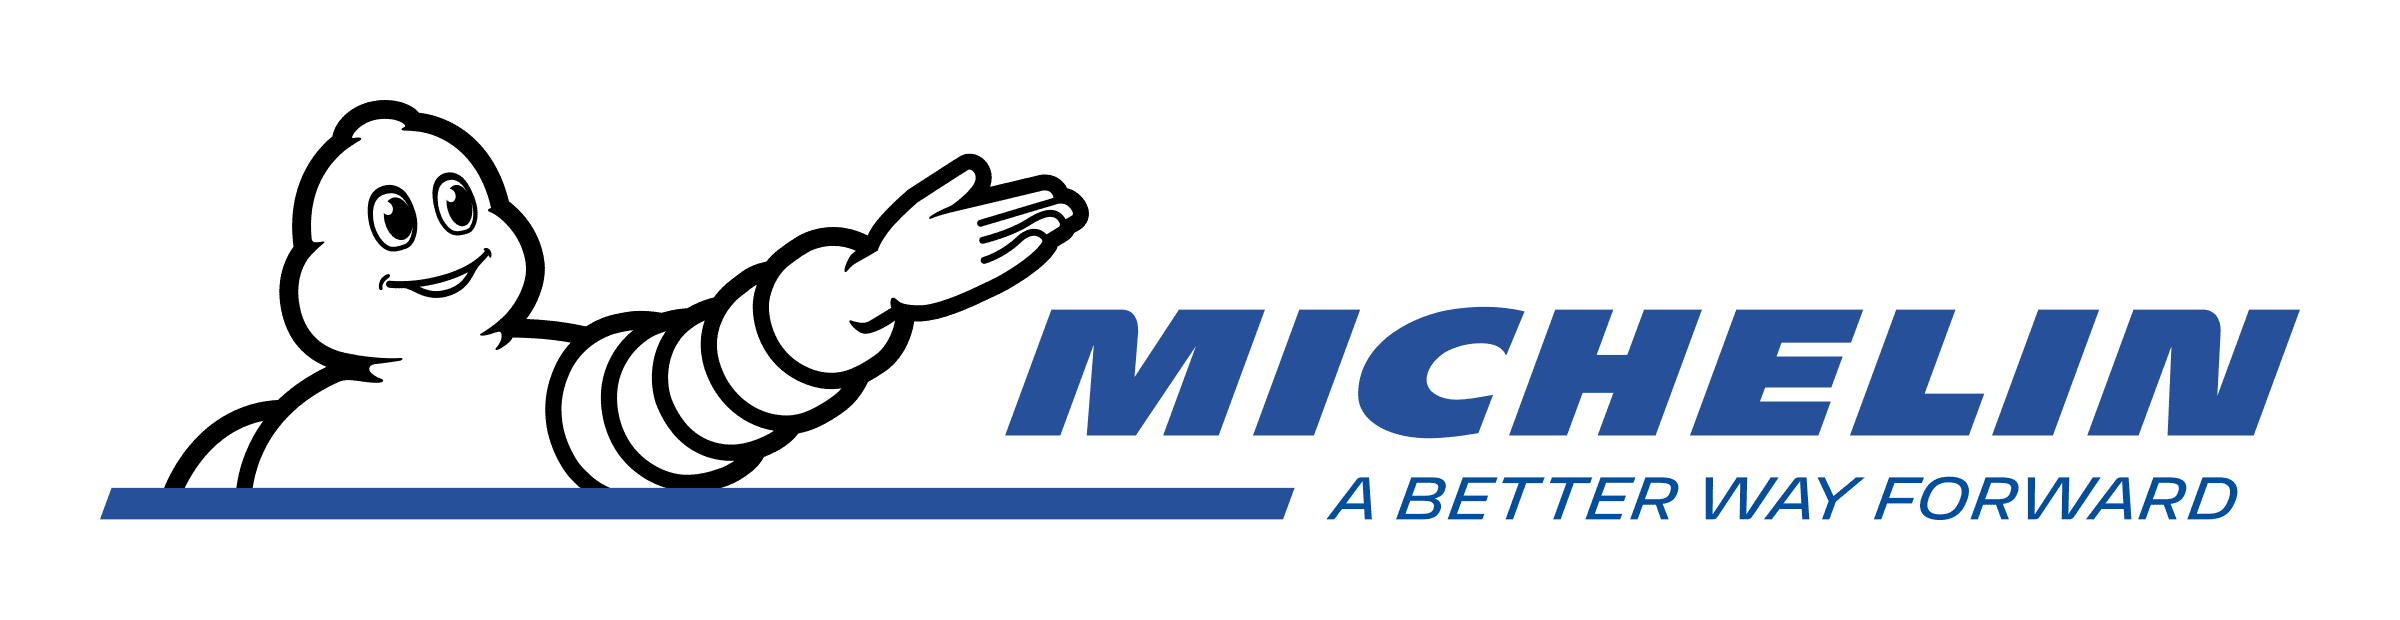 1559978443michelin-logo-png-transparent.png